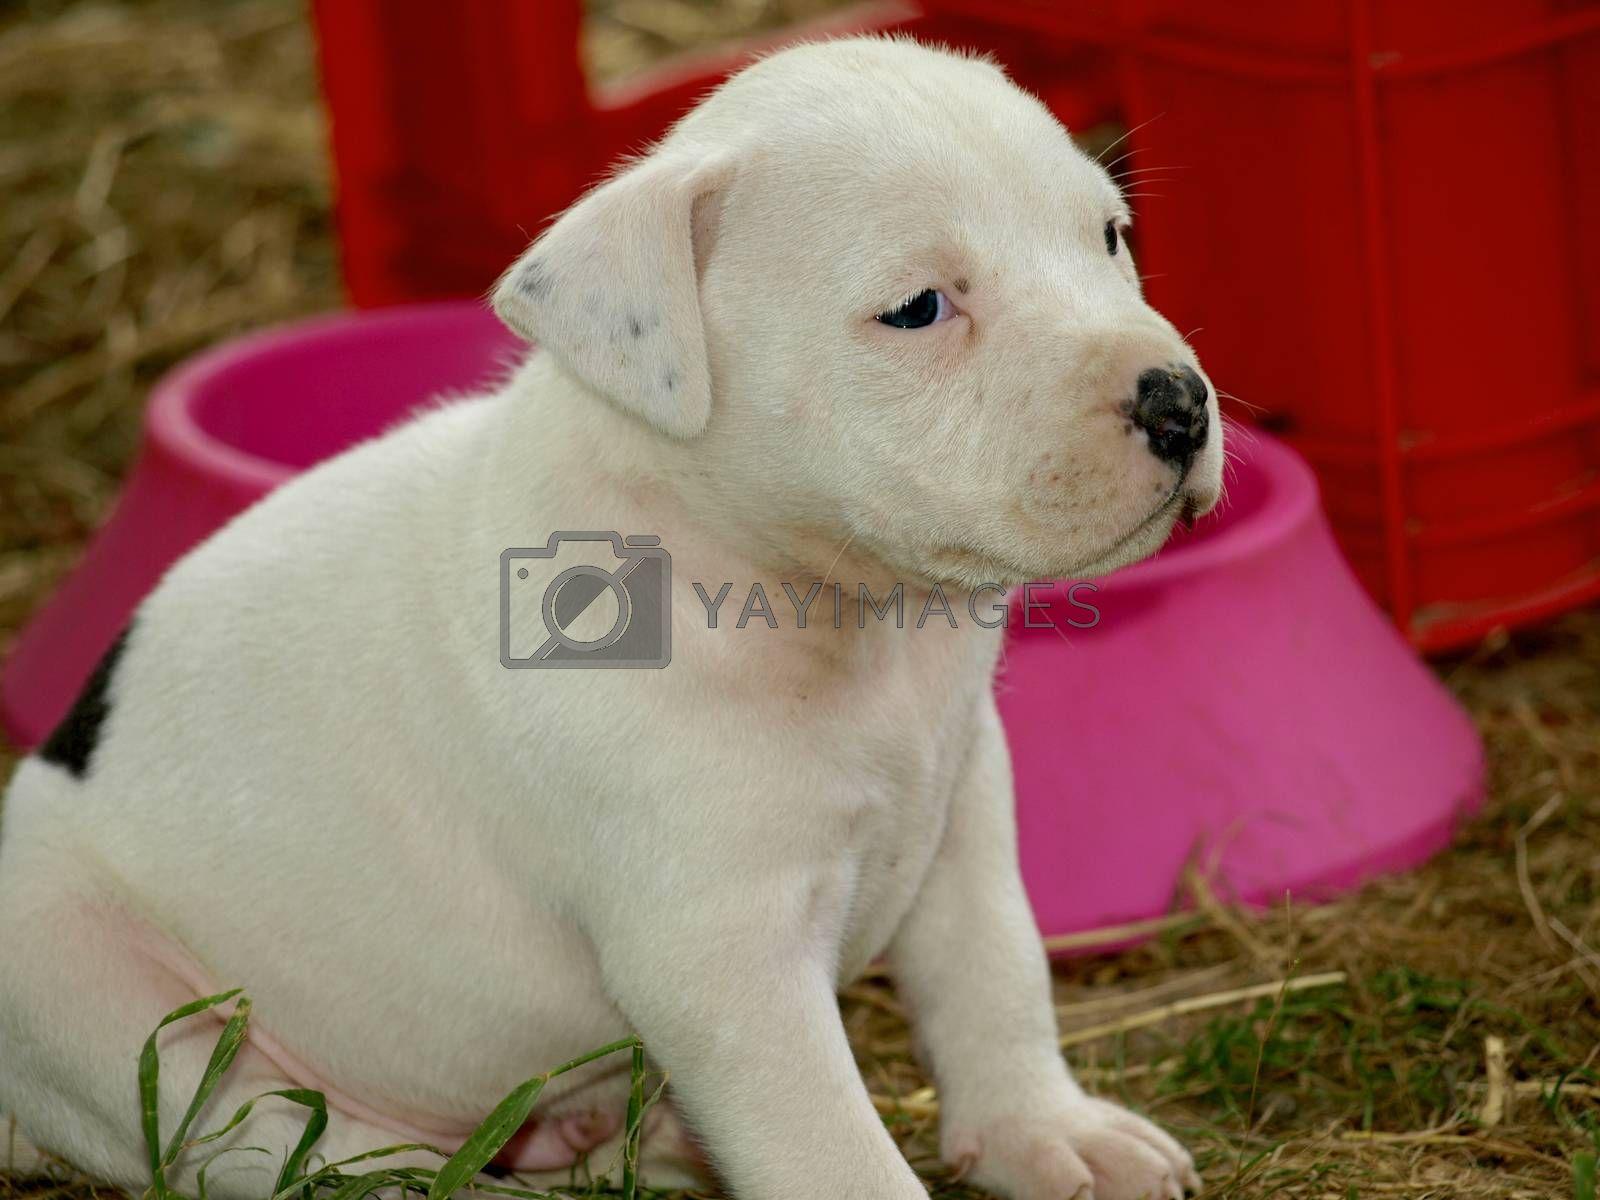 Royalty free image of puppies stafford   by pm29